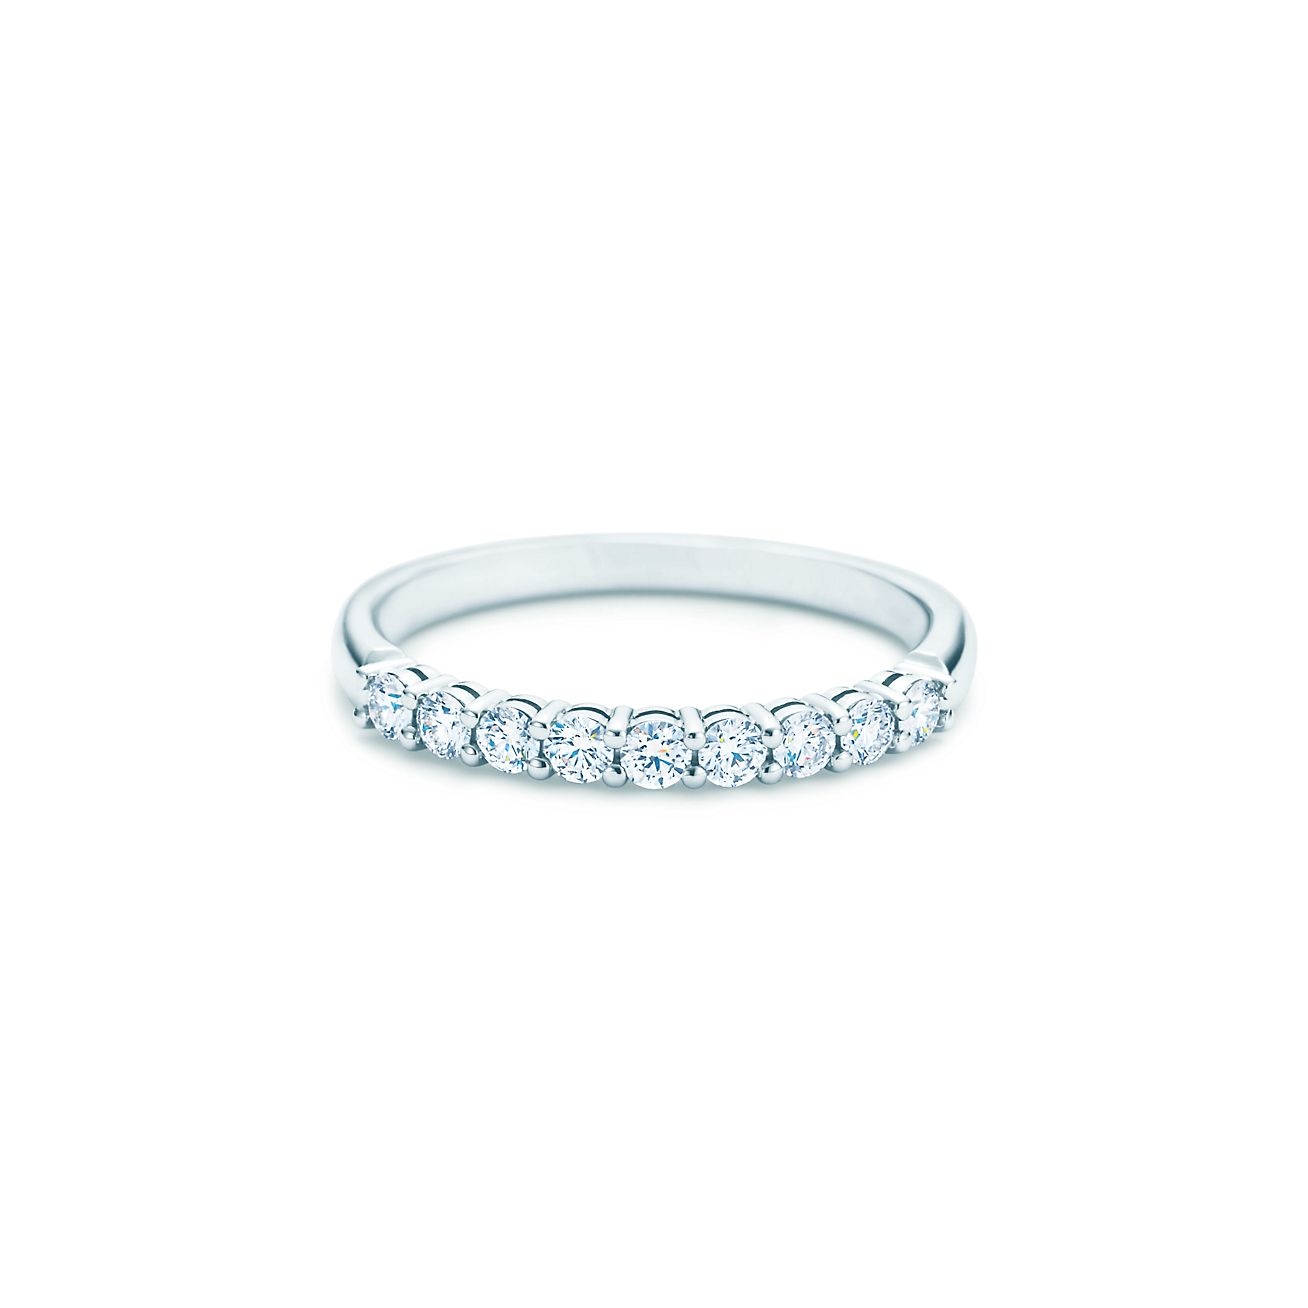 Tiffany EmbraceR Band Ring In Platinum With Diamonds 22 Mm Wide